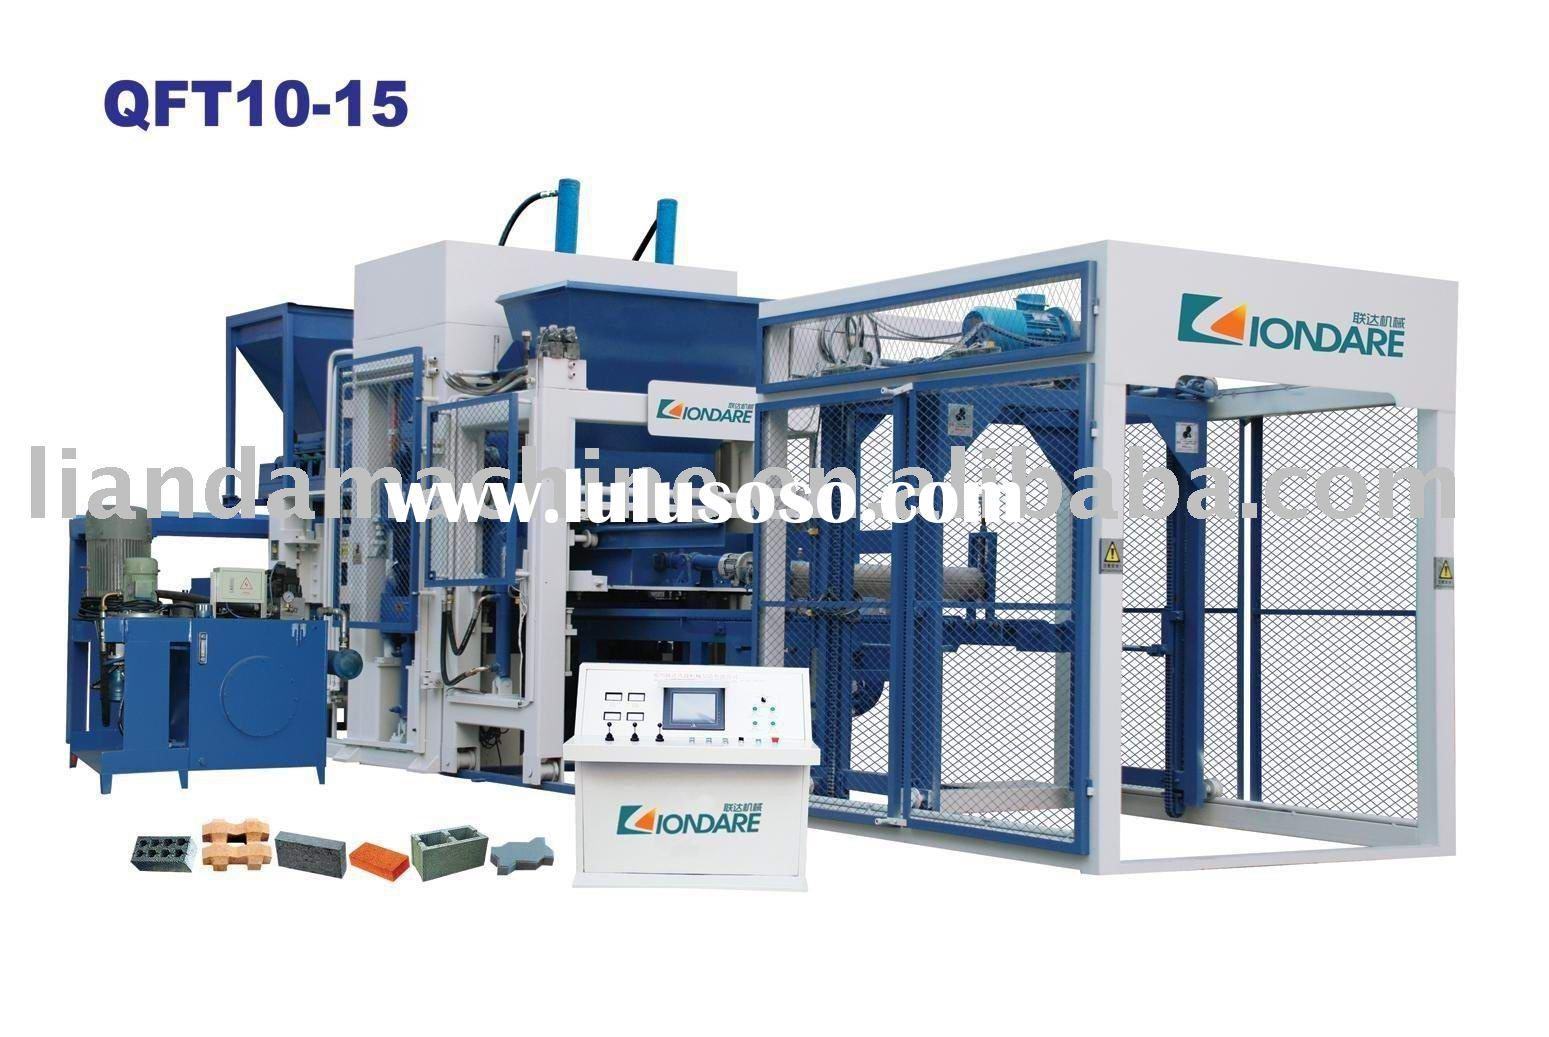 QFT10-15 fully automatic block equipment